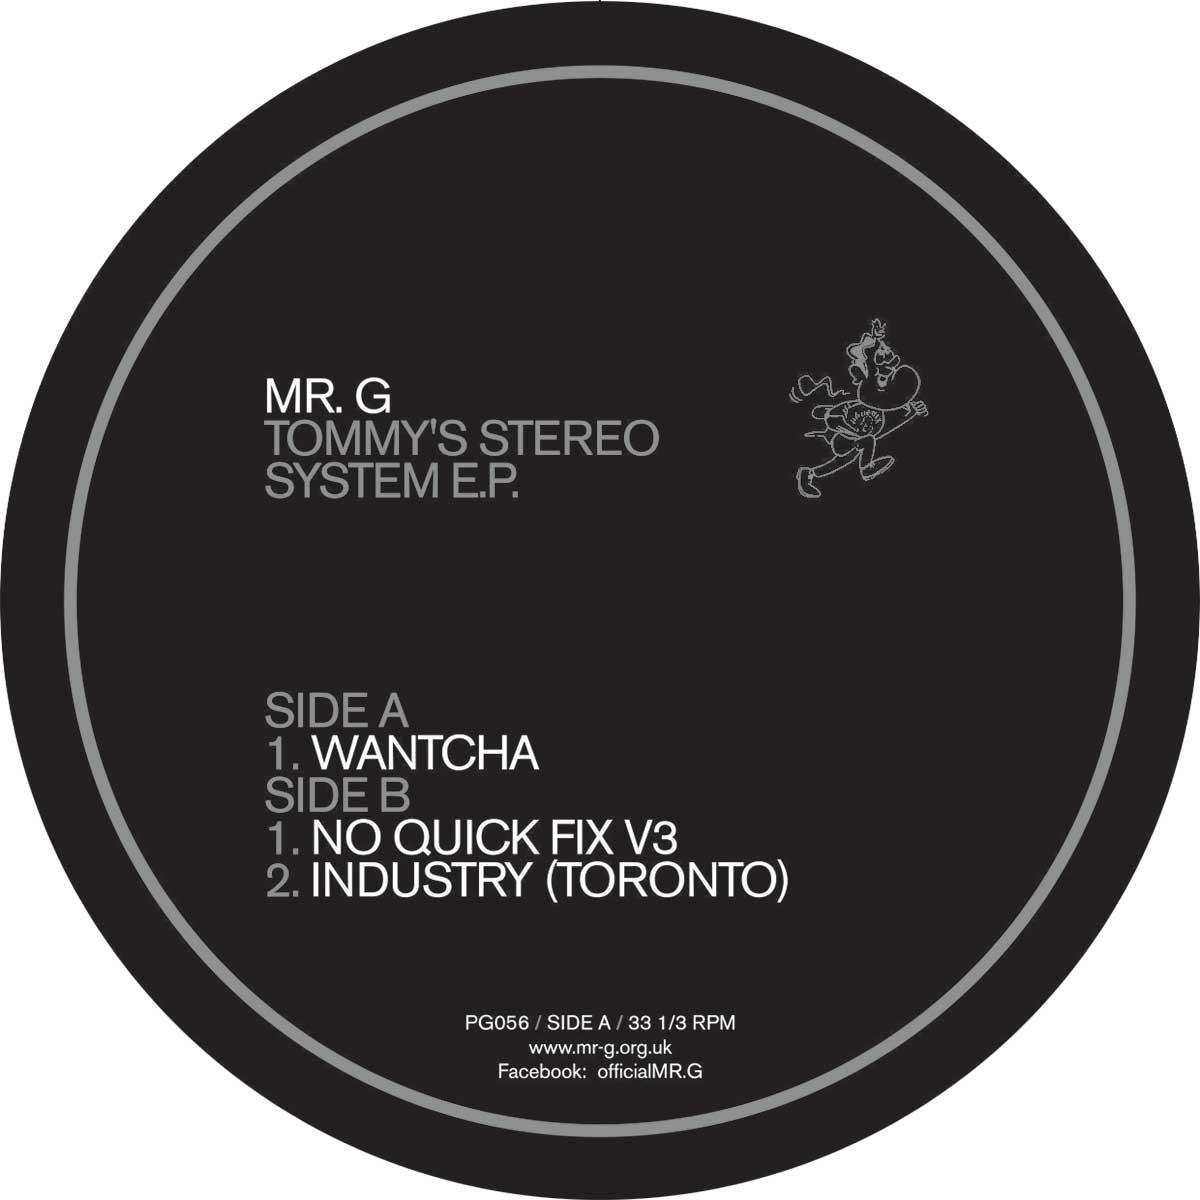 Mr. G/TOMMY'S STEREO SYSTEM EP 12""